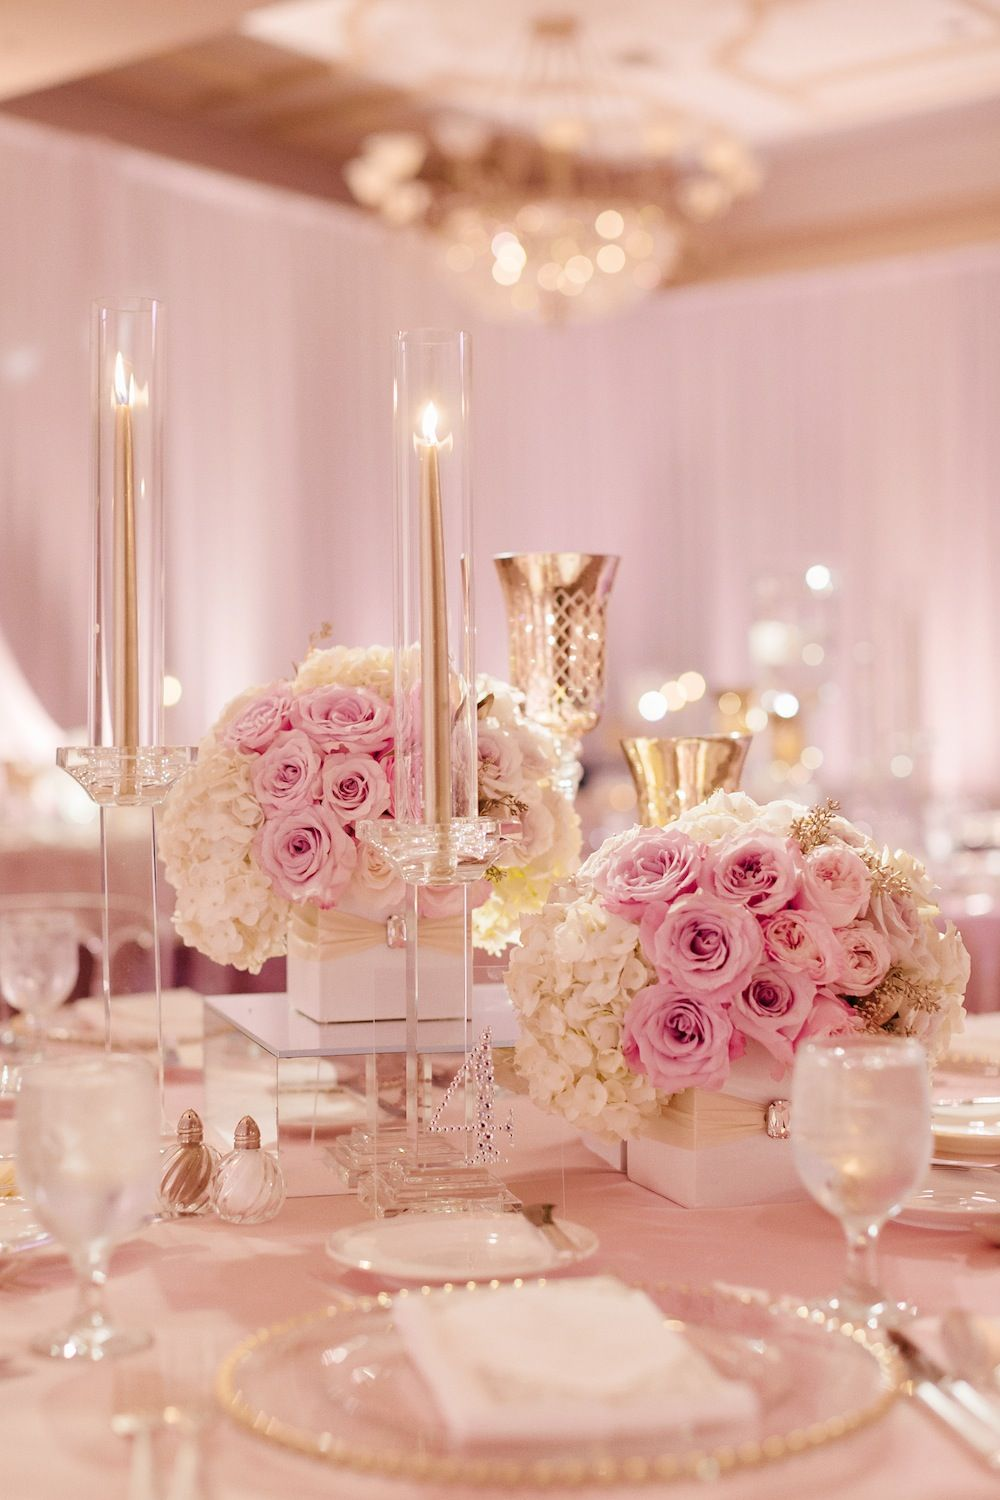 Blush Pink and White Wedding, Rose Gold, Inbaldror Gown, St Regis ...